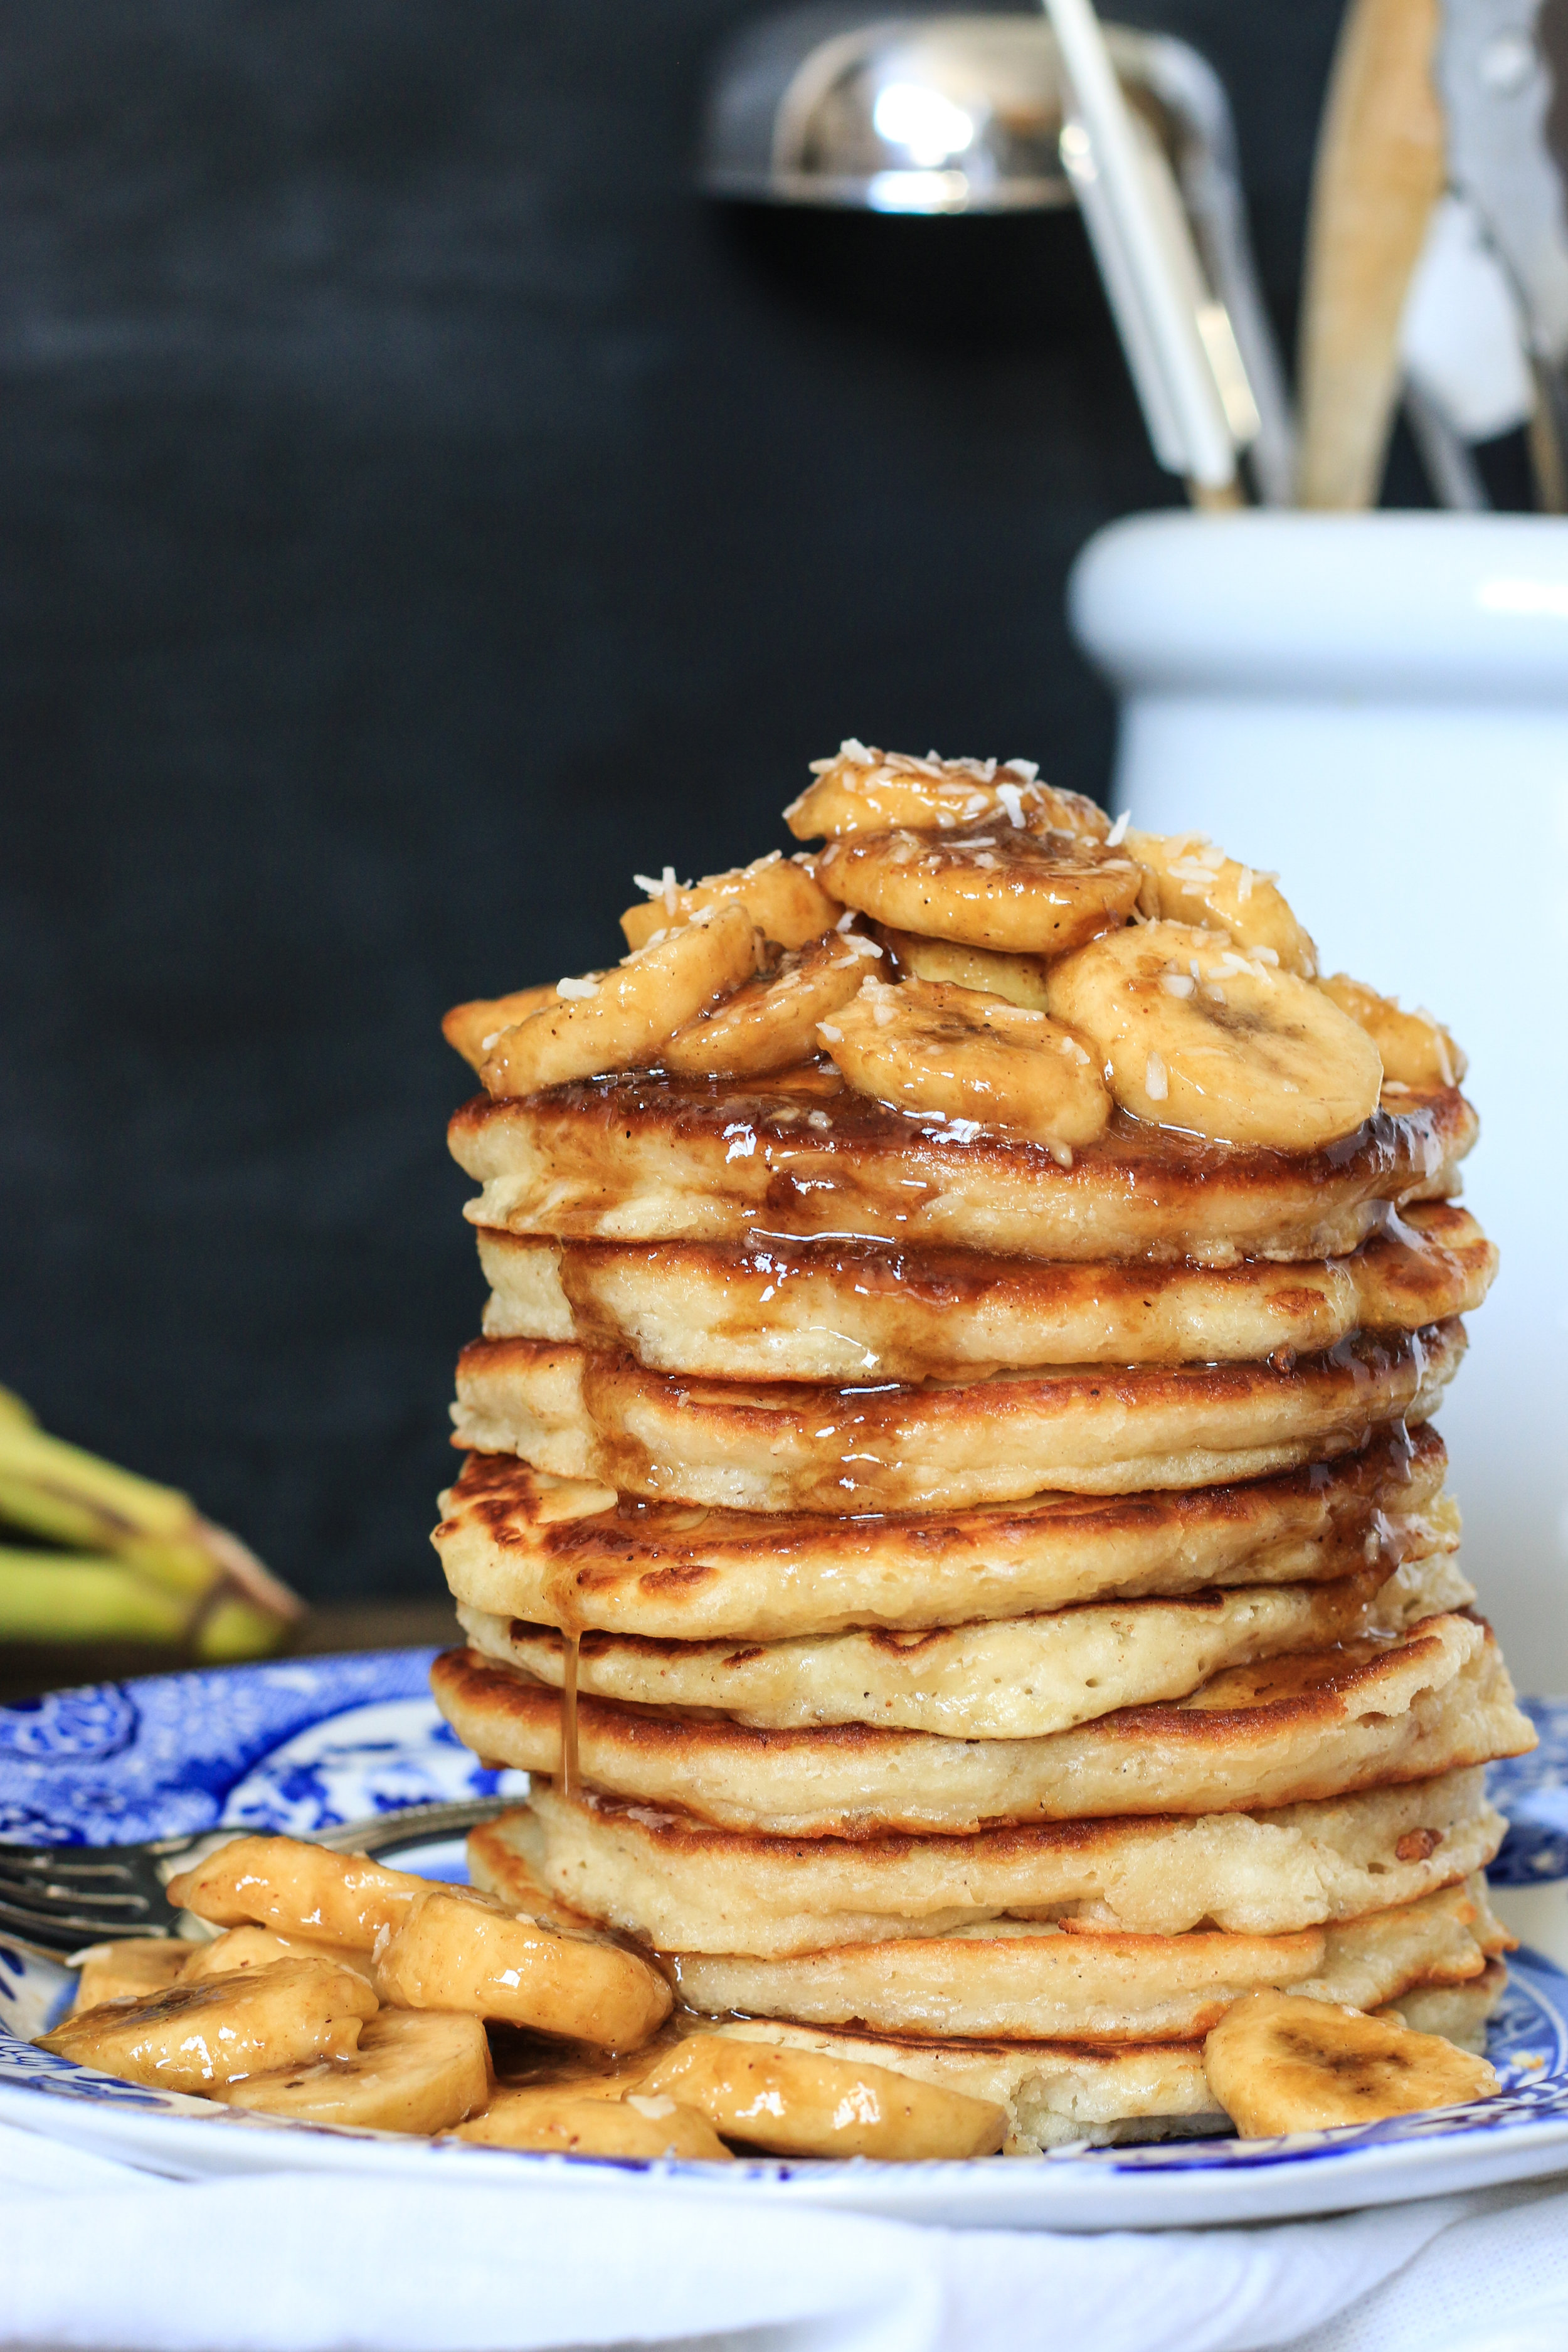 Fluffy+Coconut+Pancakes+with+Bananas+Foster.jpg